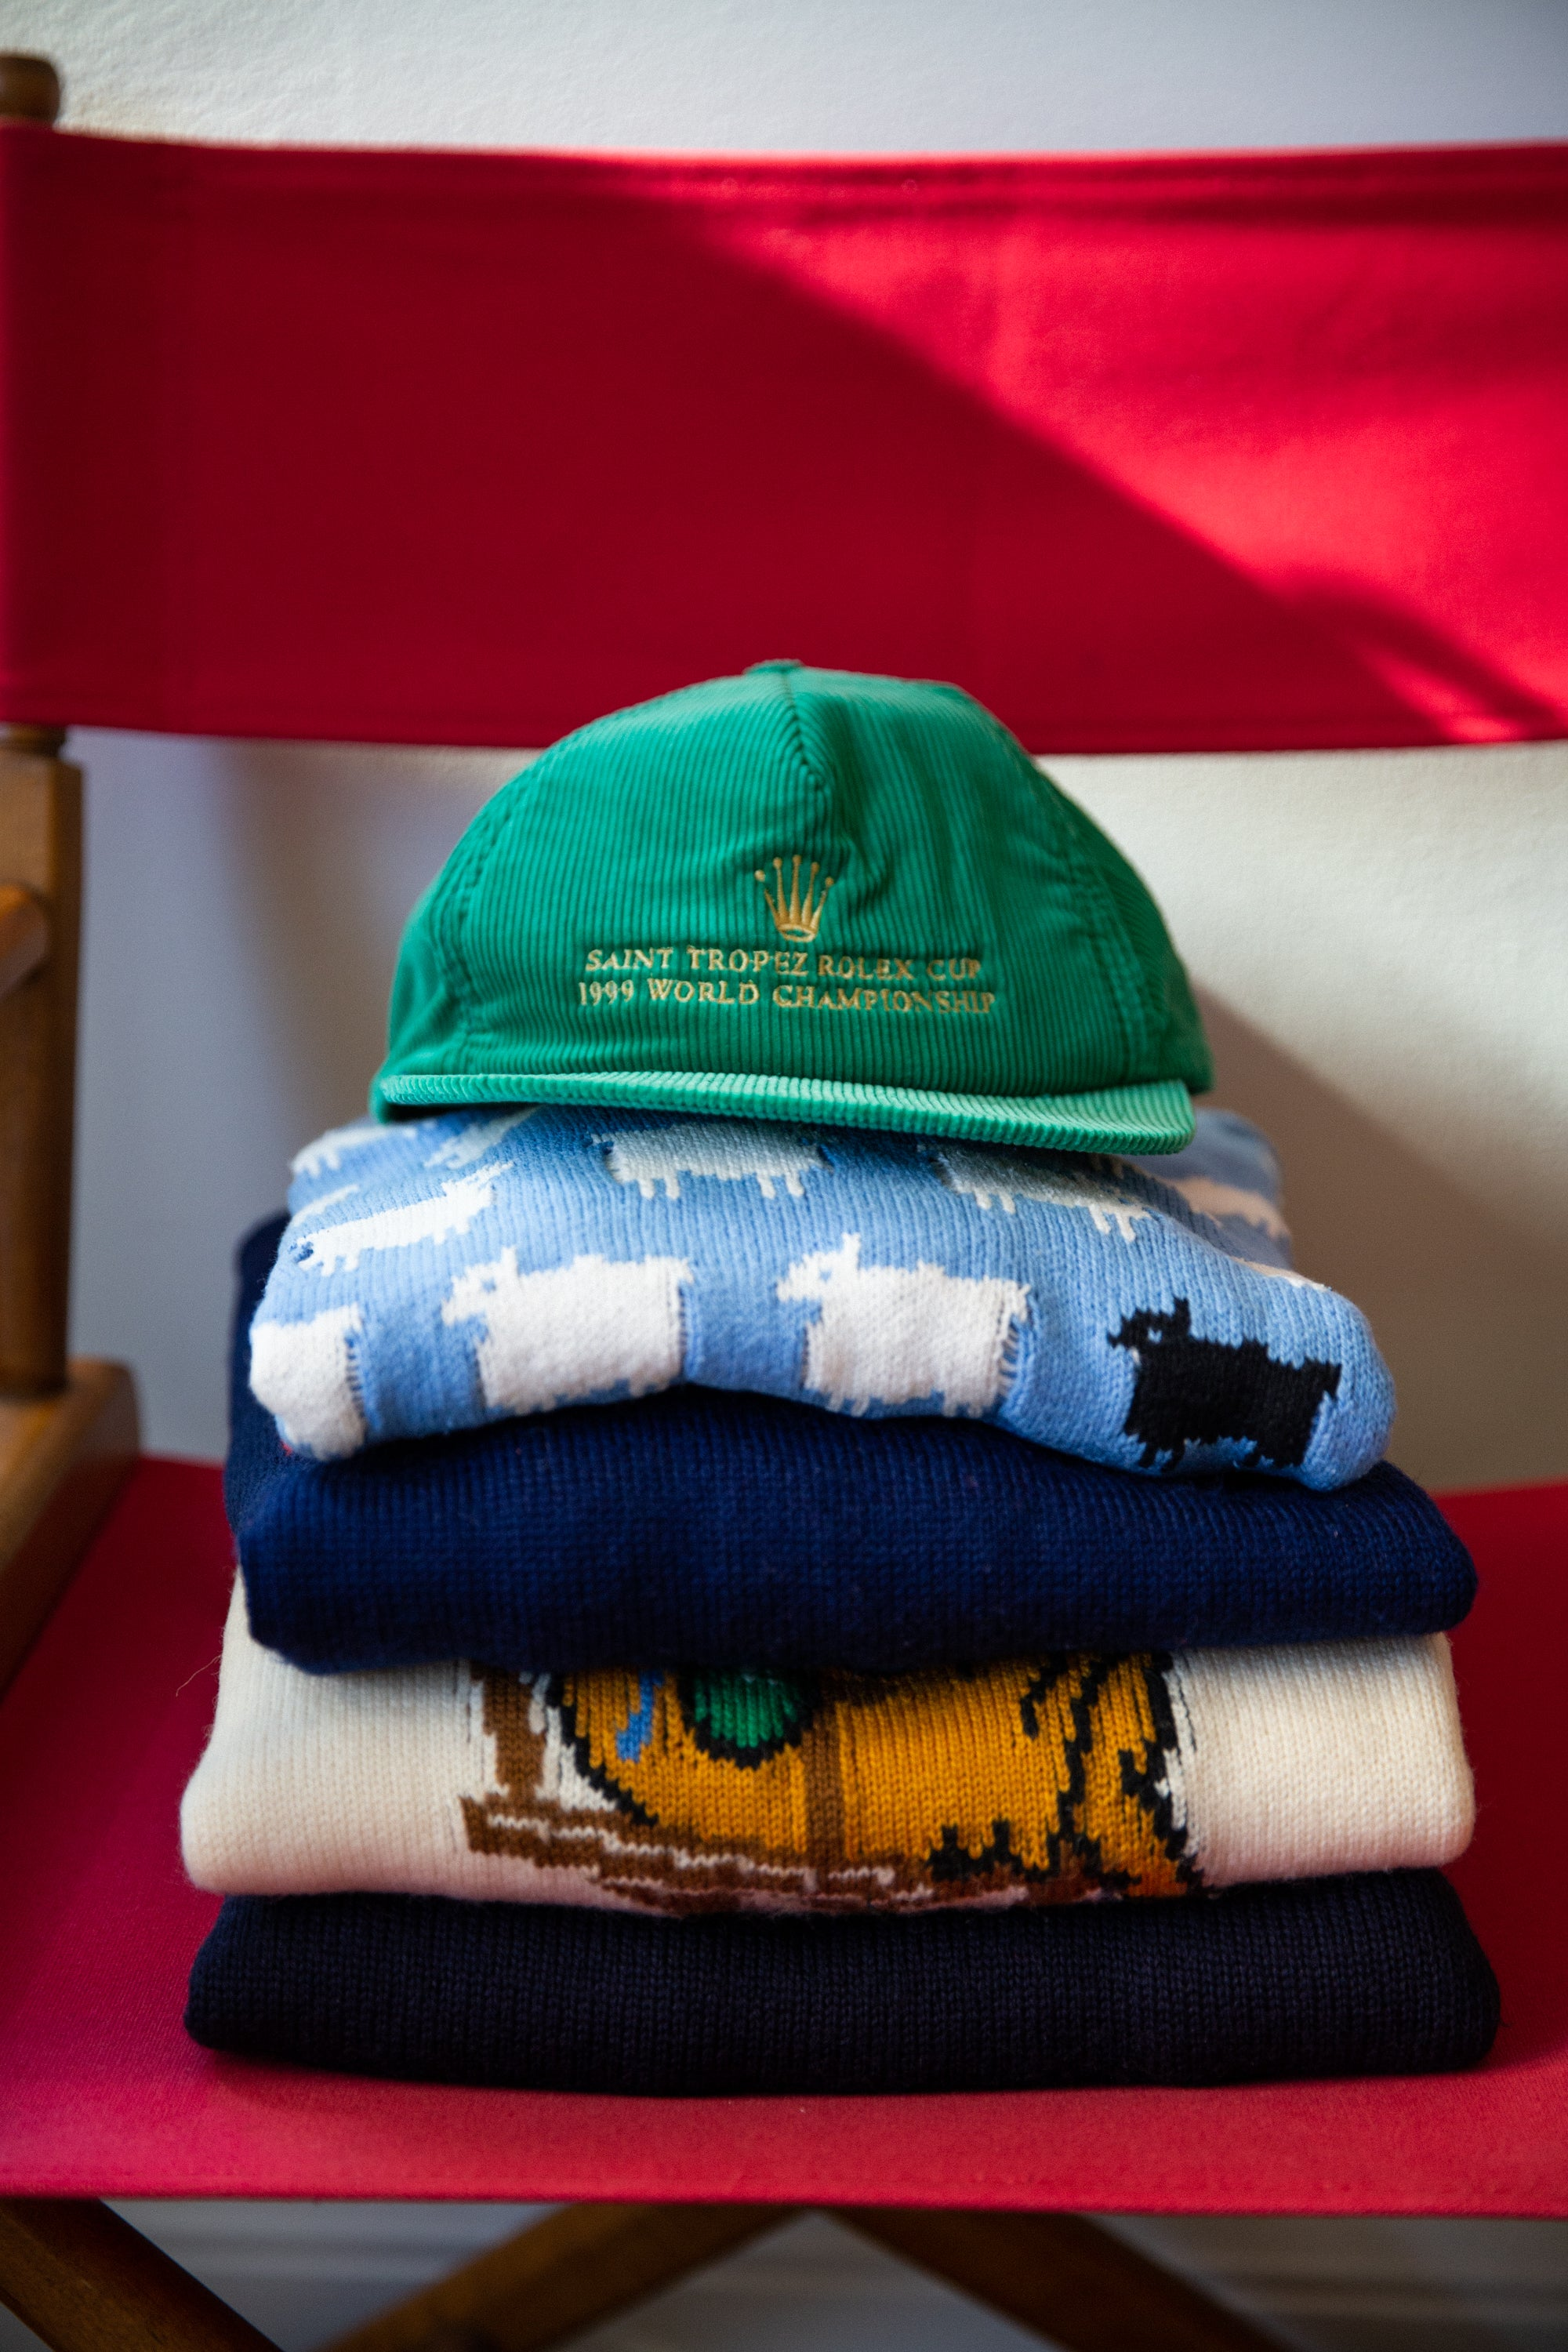 Close-up of a hat on top of various sweaters